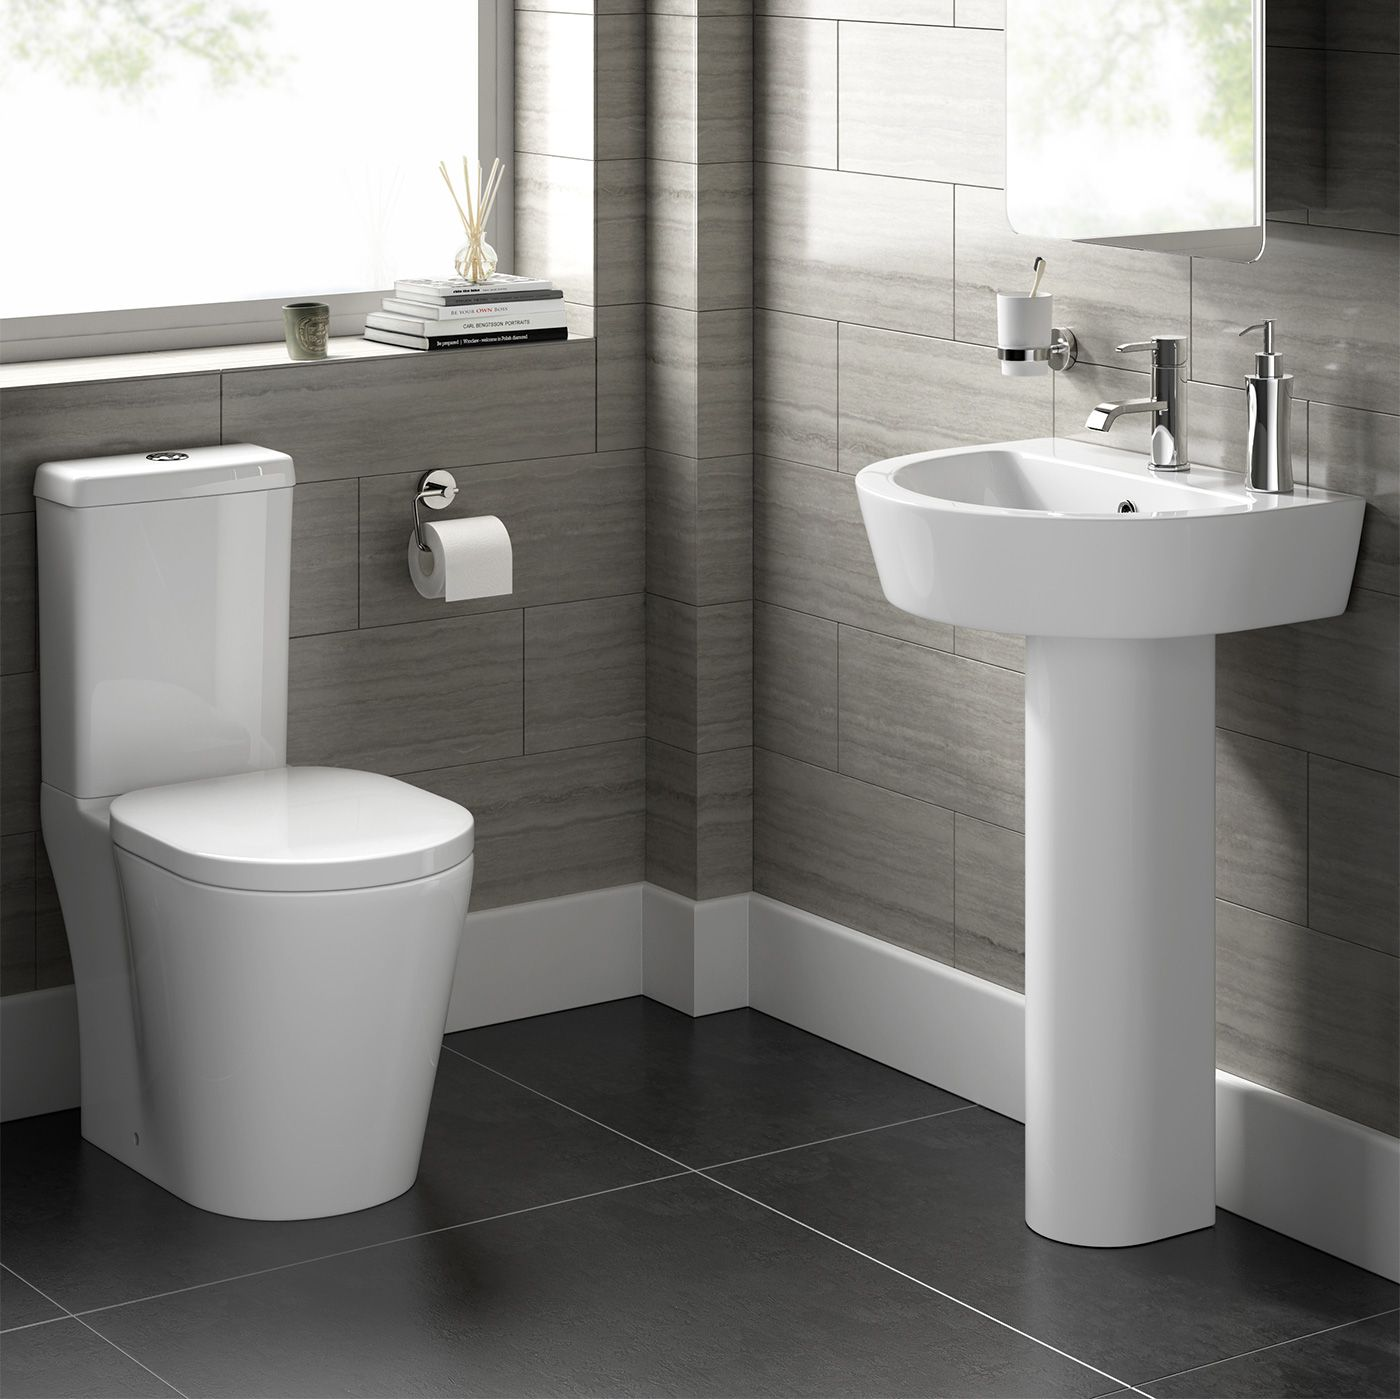 Toilet Albi Close Coupled Toilet and Pedestal